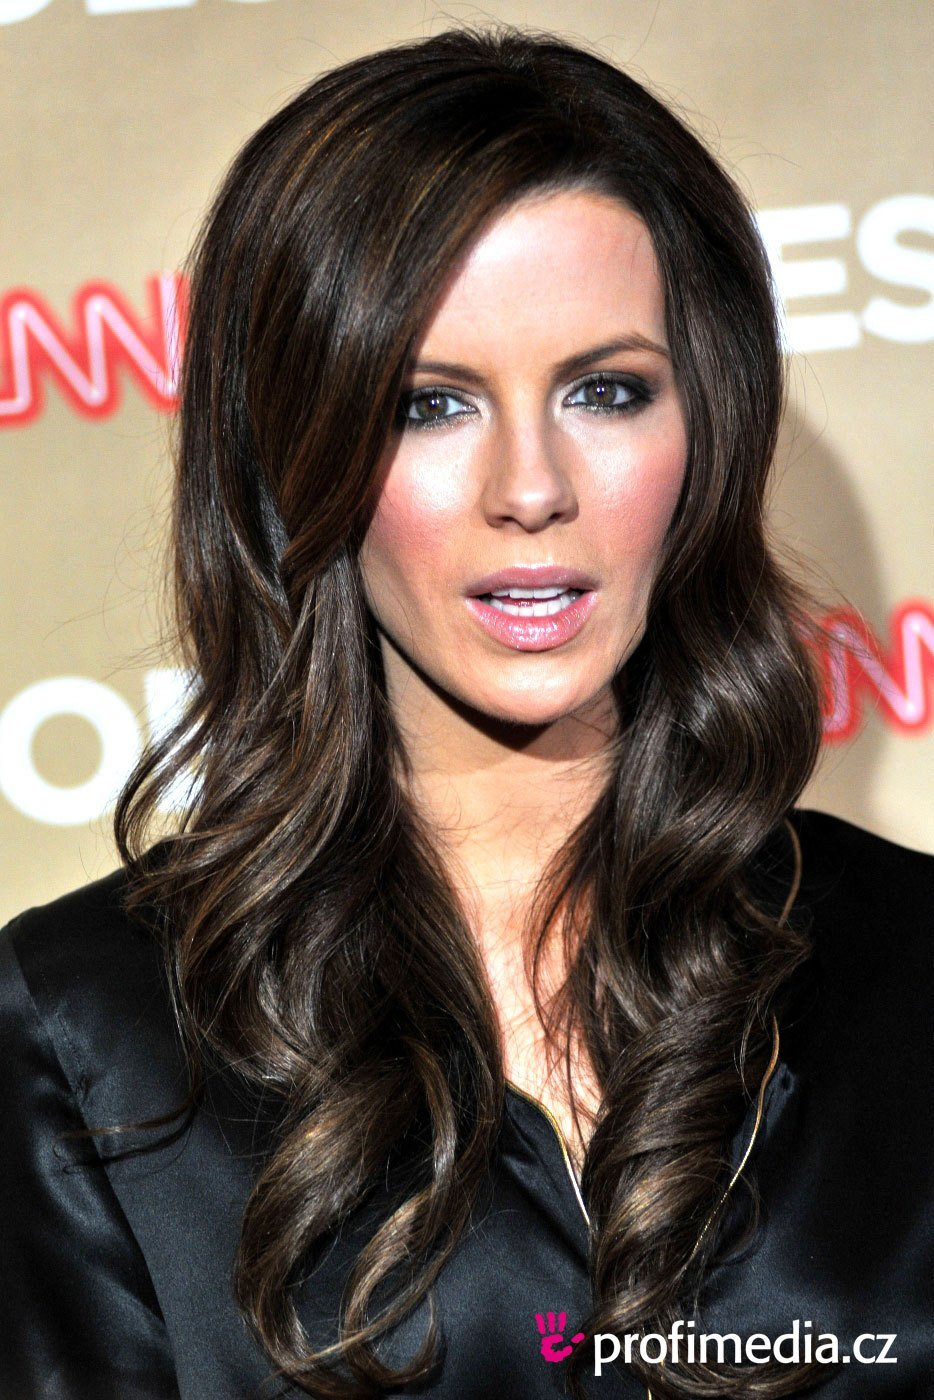 The Best Kate Beckinsale Hairstyle Easyhairstyler Pictures